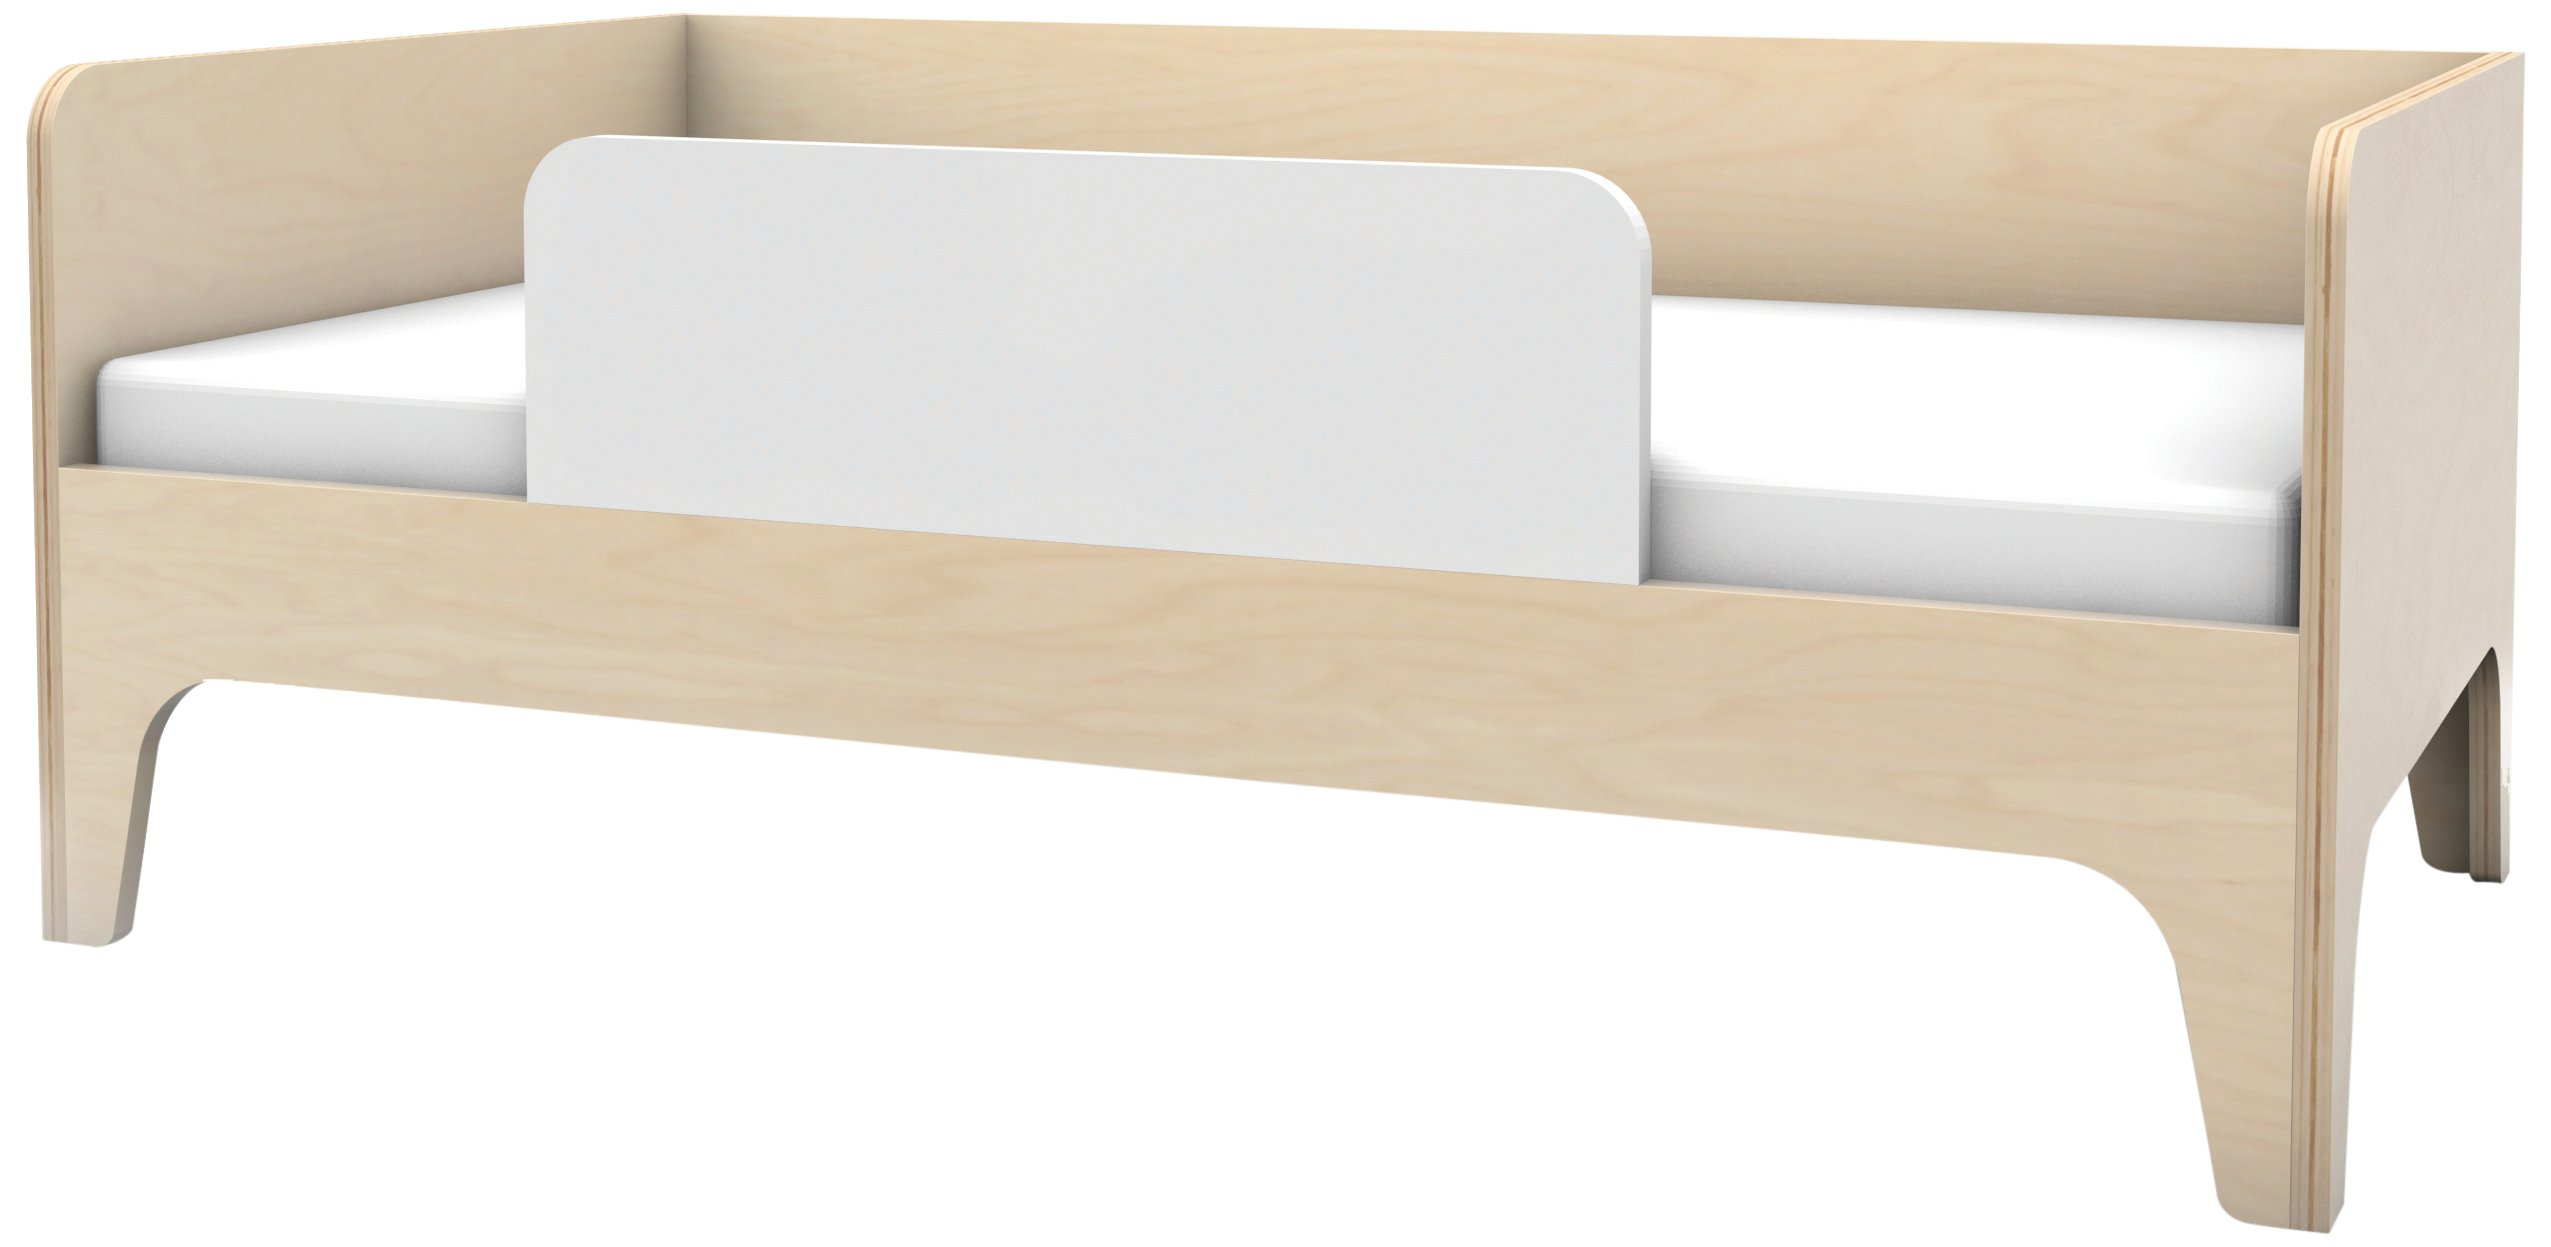 Oeuf Perch Toddler Bed, Birch/White by Oeuf